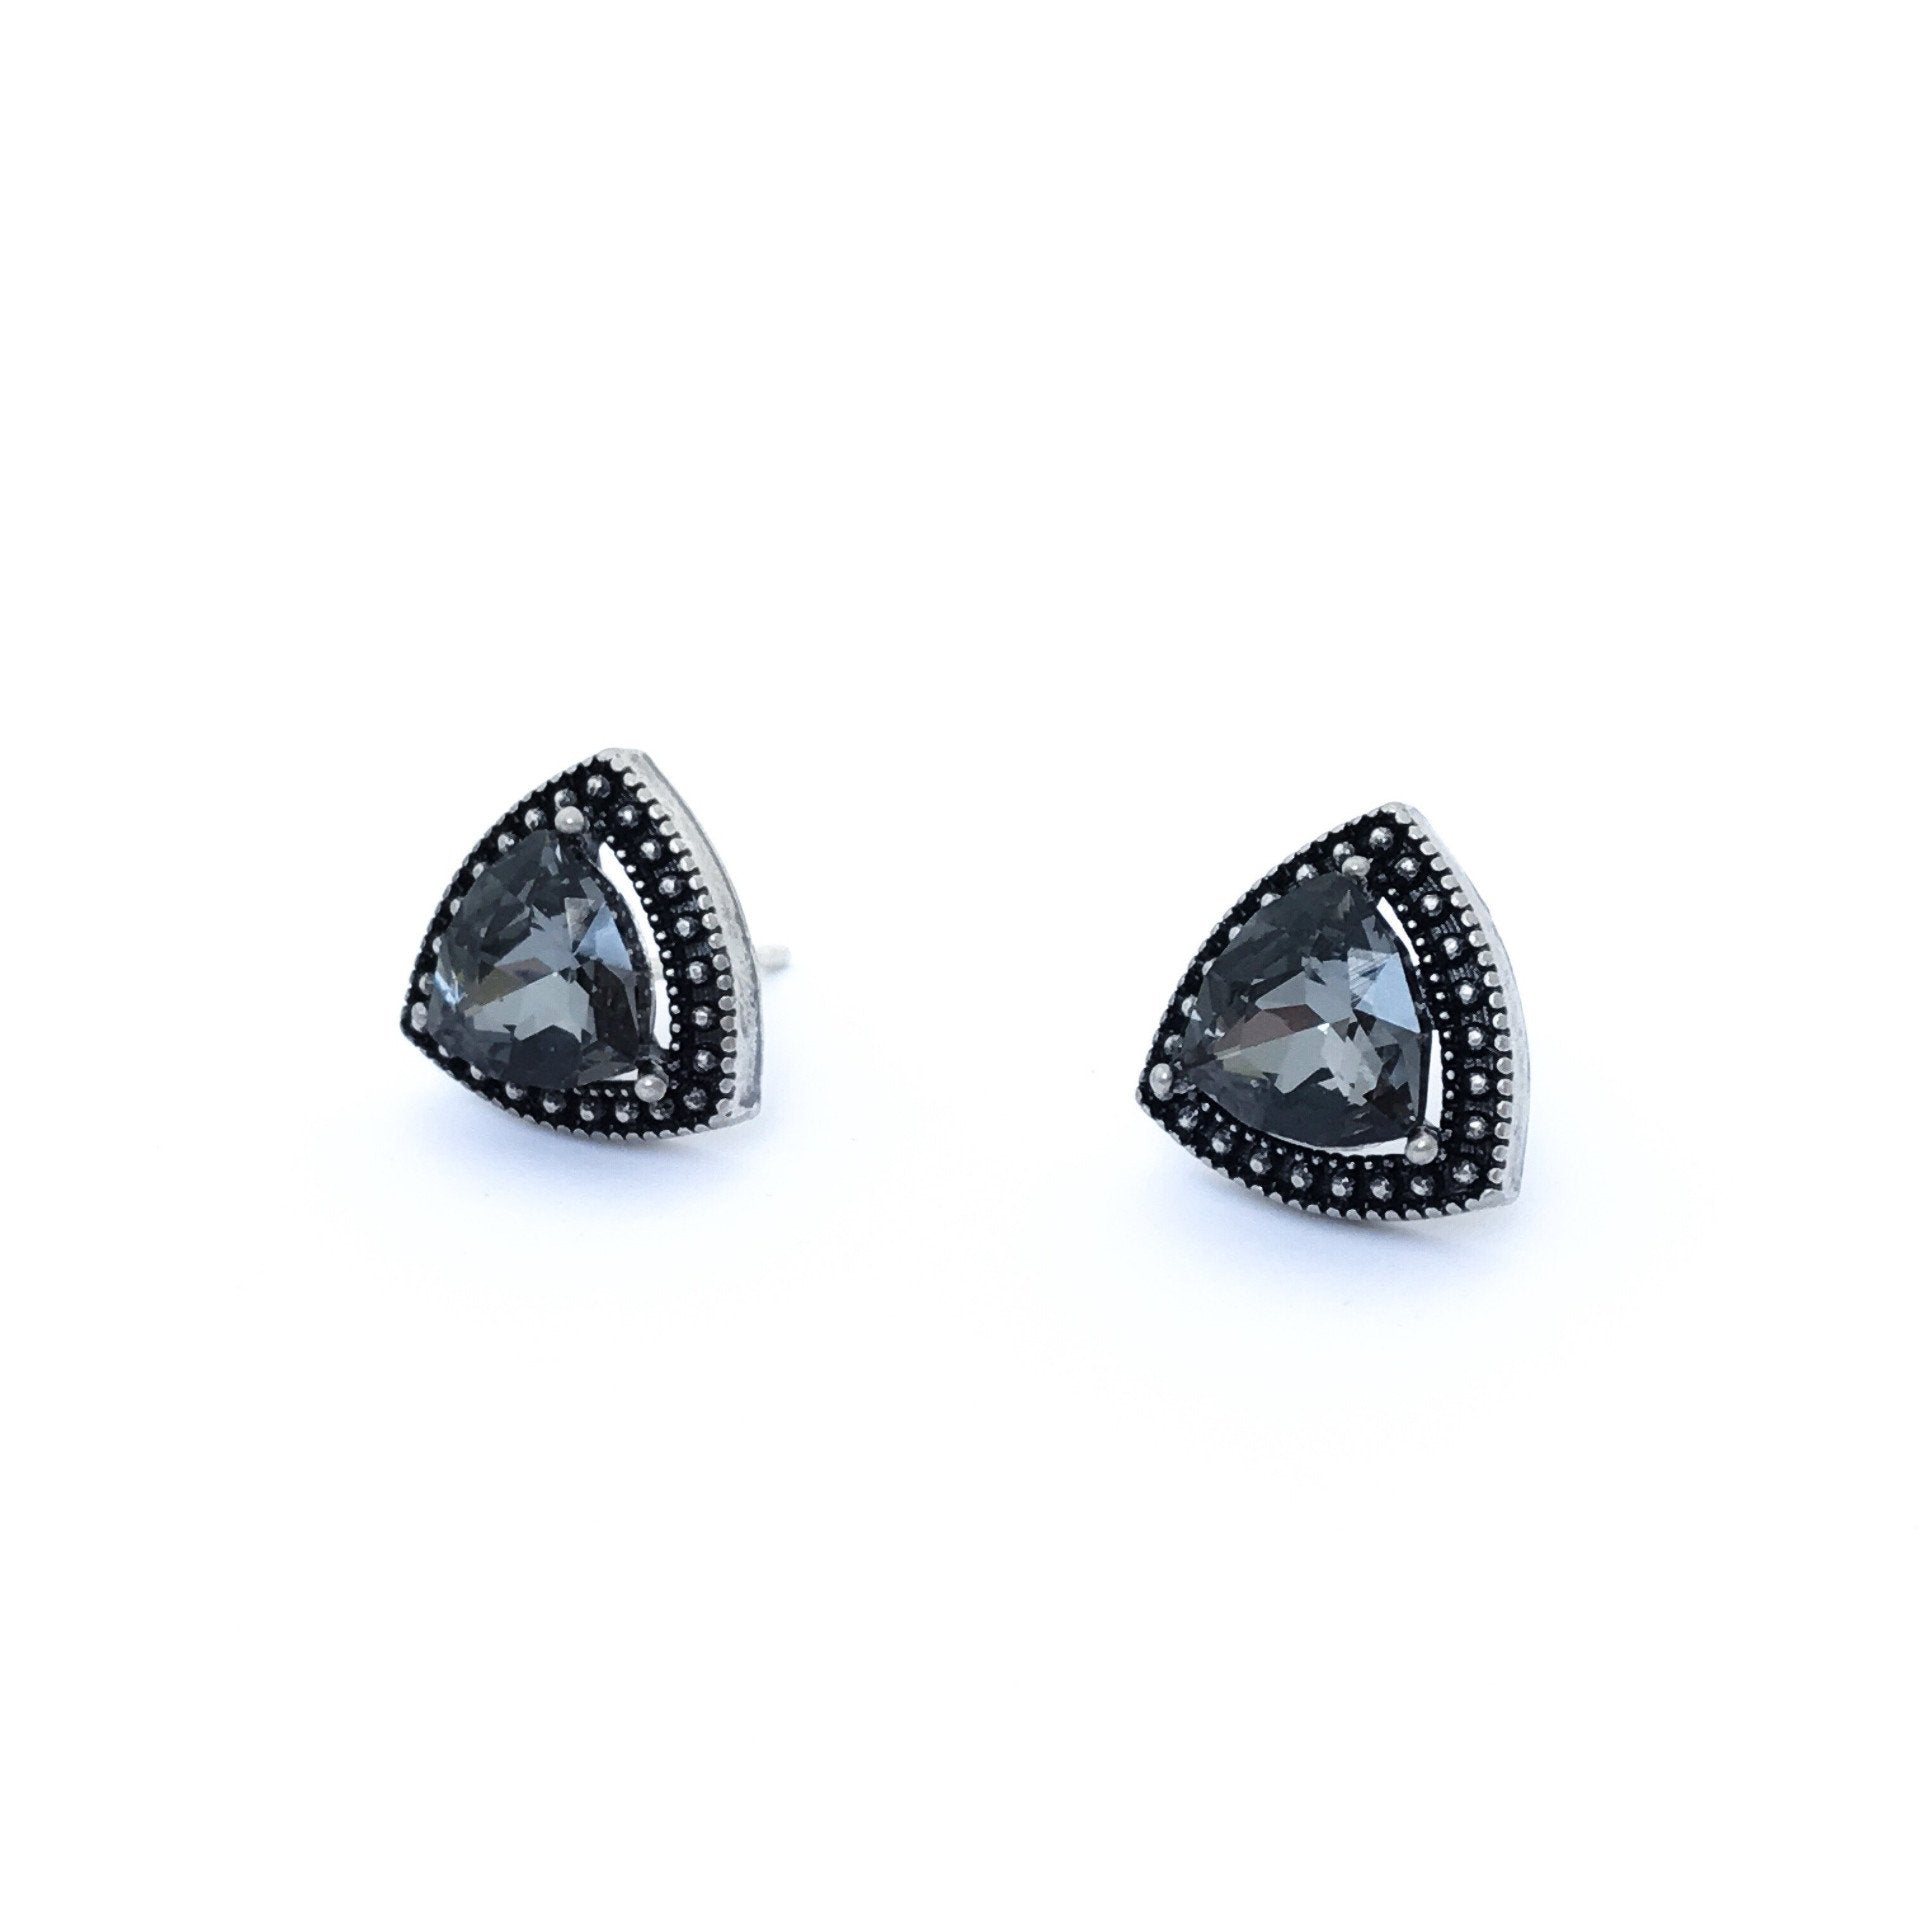 sinaa stud earring main earrings image diamond baker crystal item black masdings ted silver